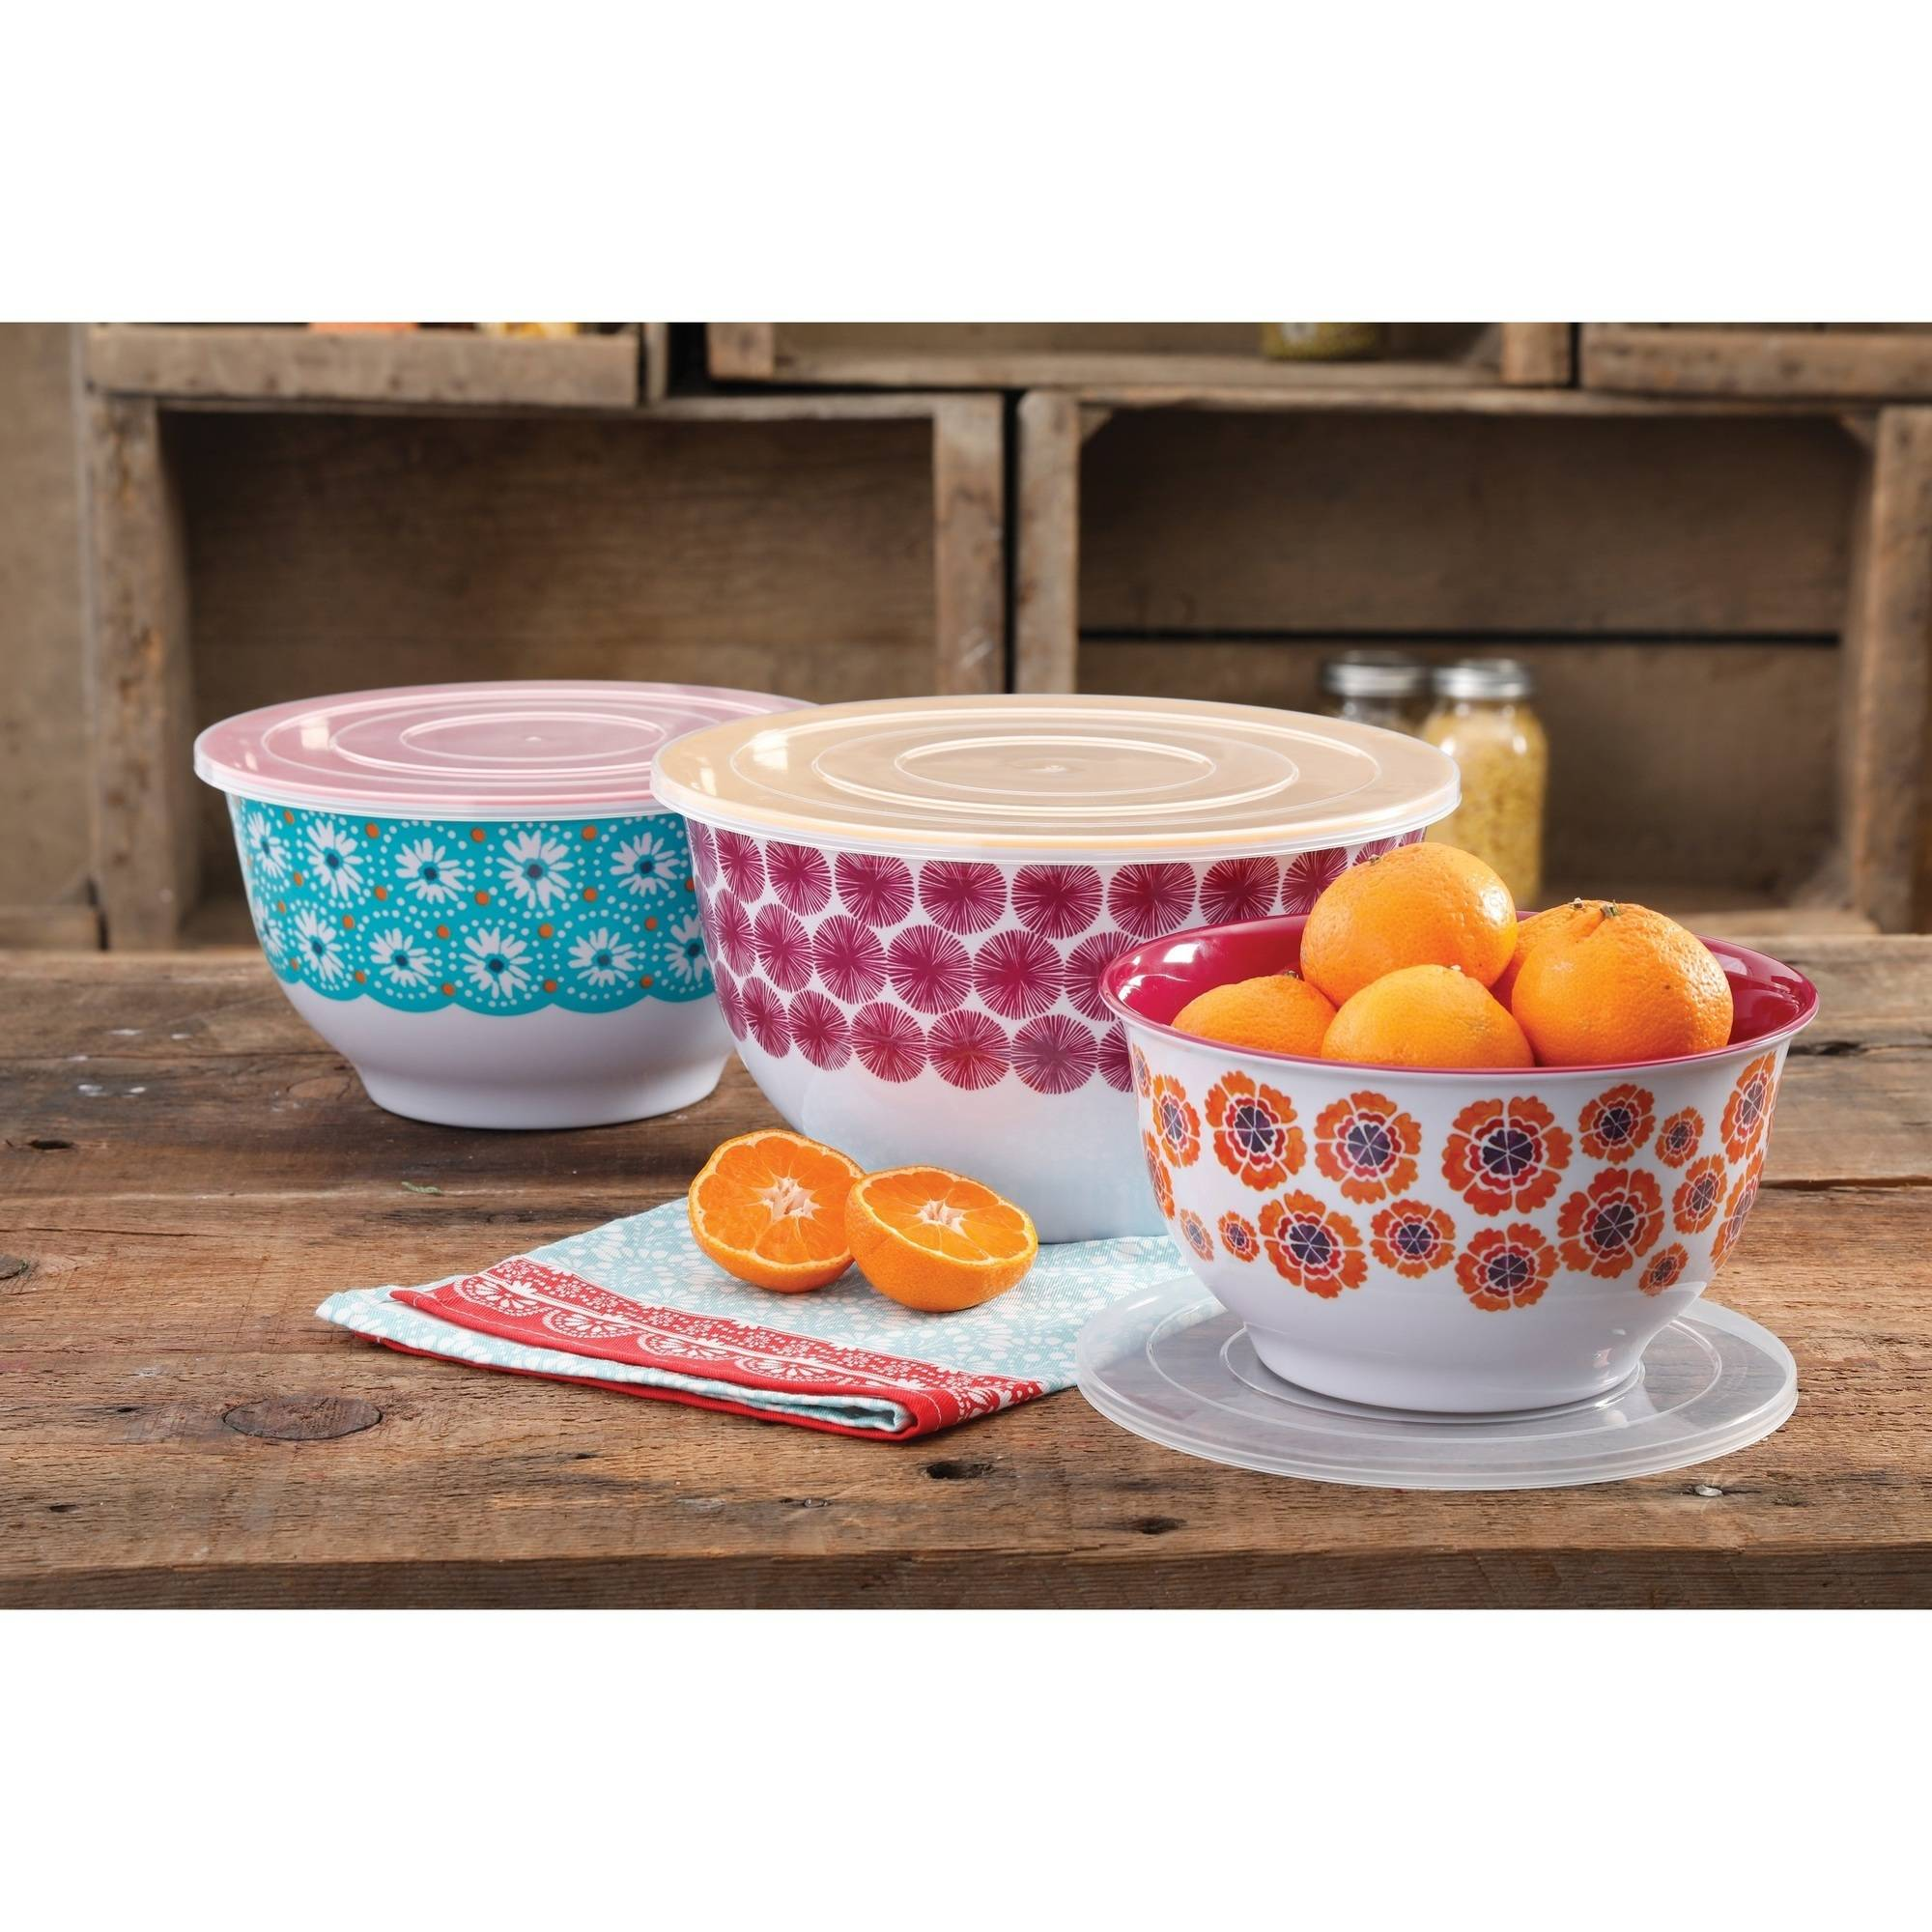 The Pioneer Woman Happiness 3-Piece Melamine Mixing Bowl Set